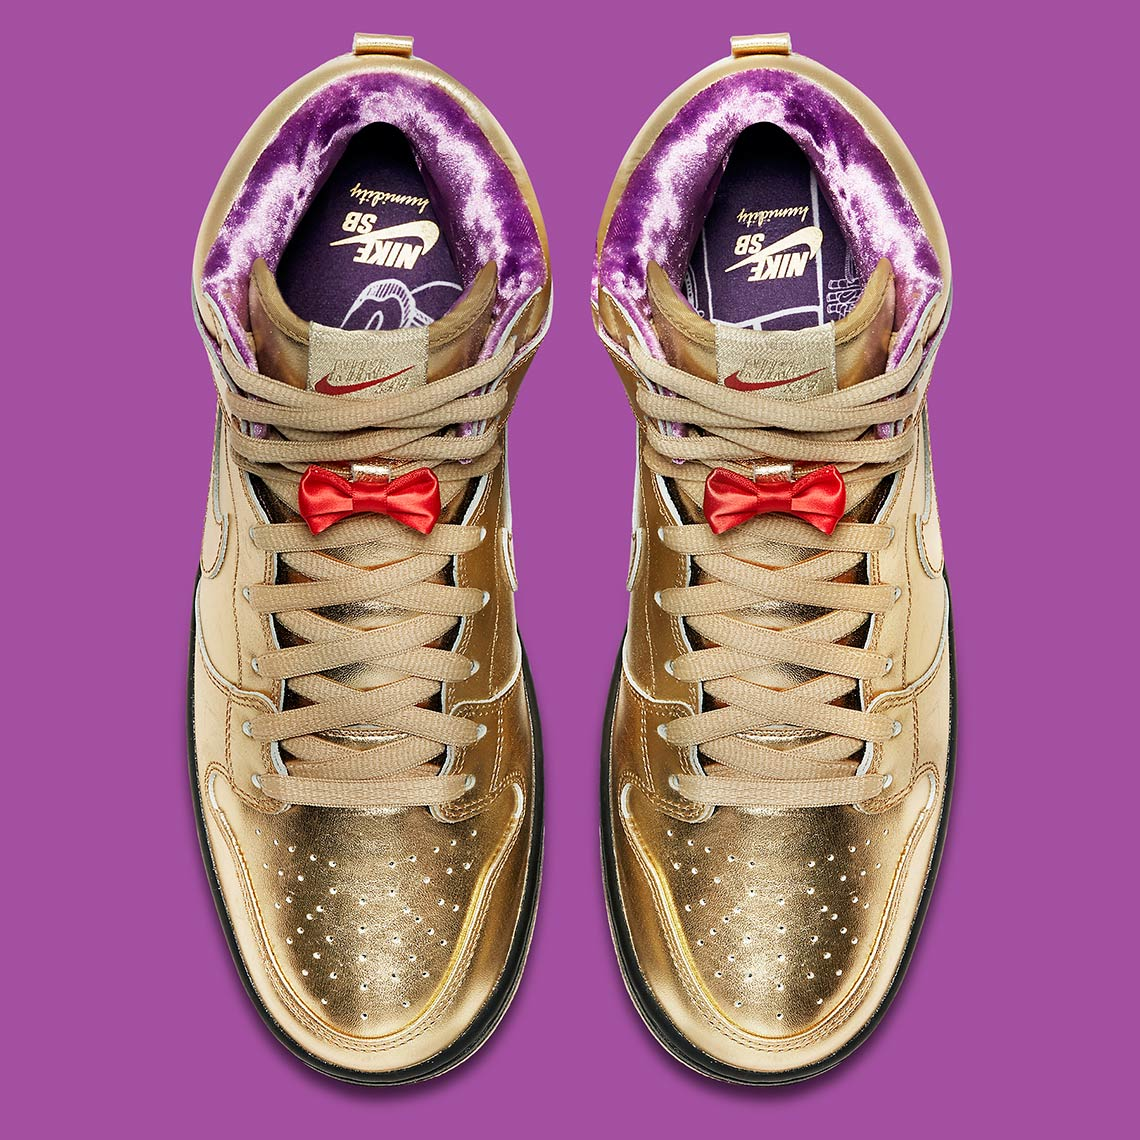 new arrival e428a e24c3 Humidity Nike SB Dunk High NOLA Release Date | SneakerNews.com